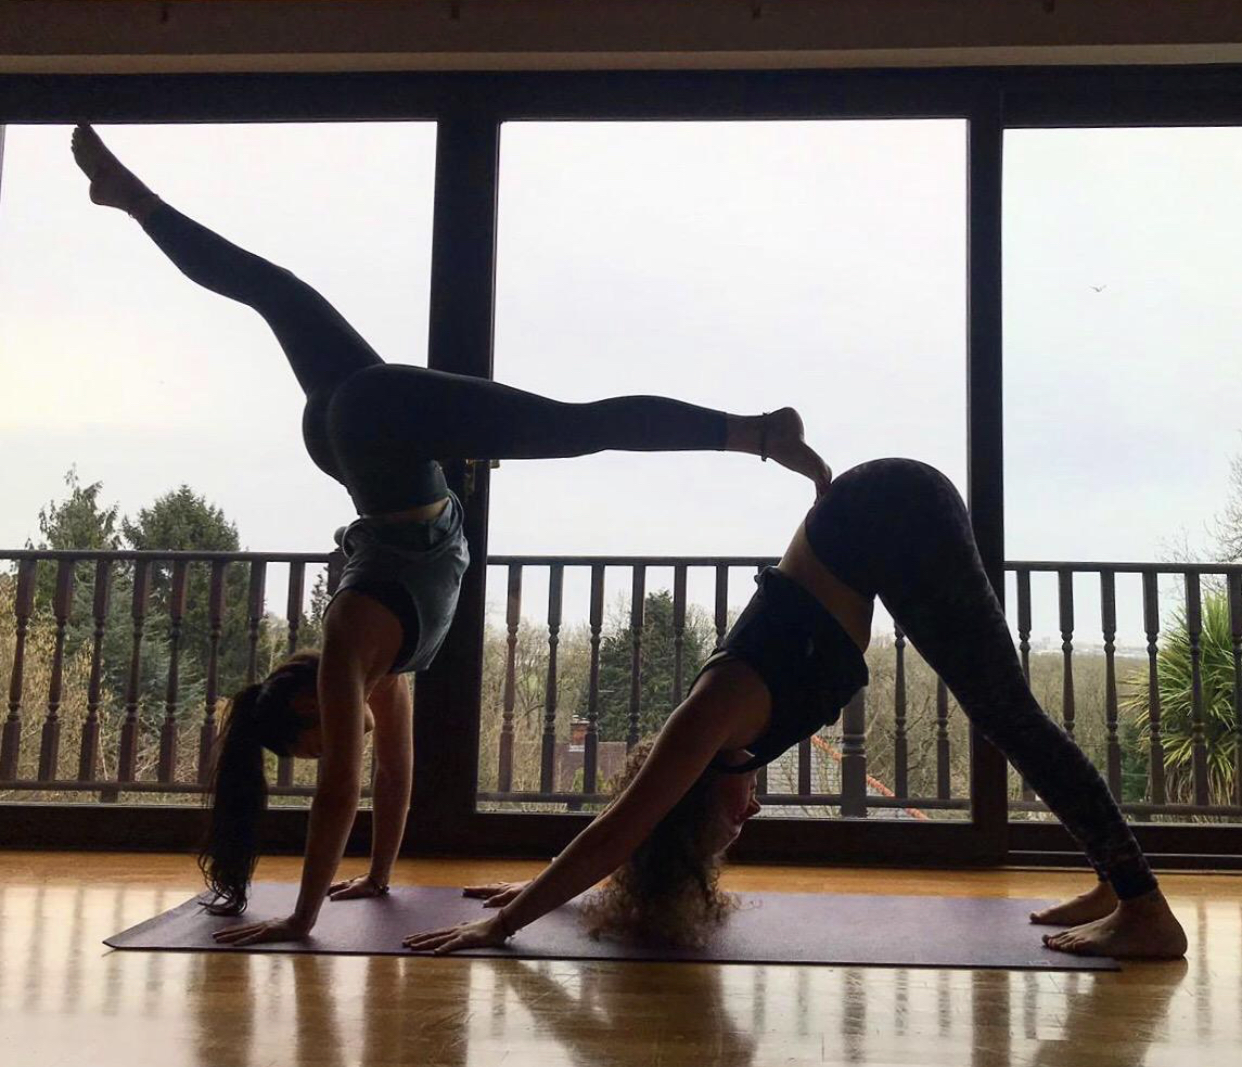 Getting our Acro on!